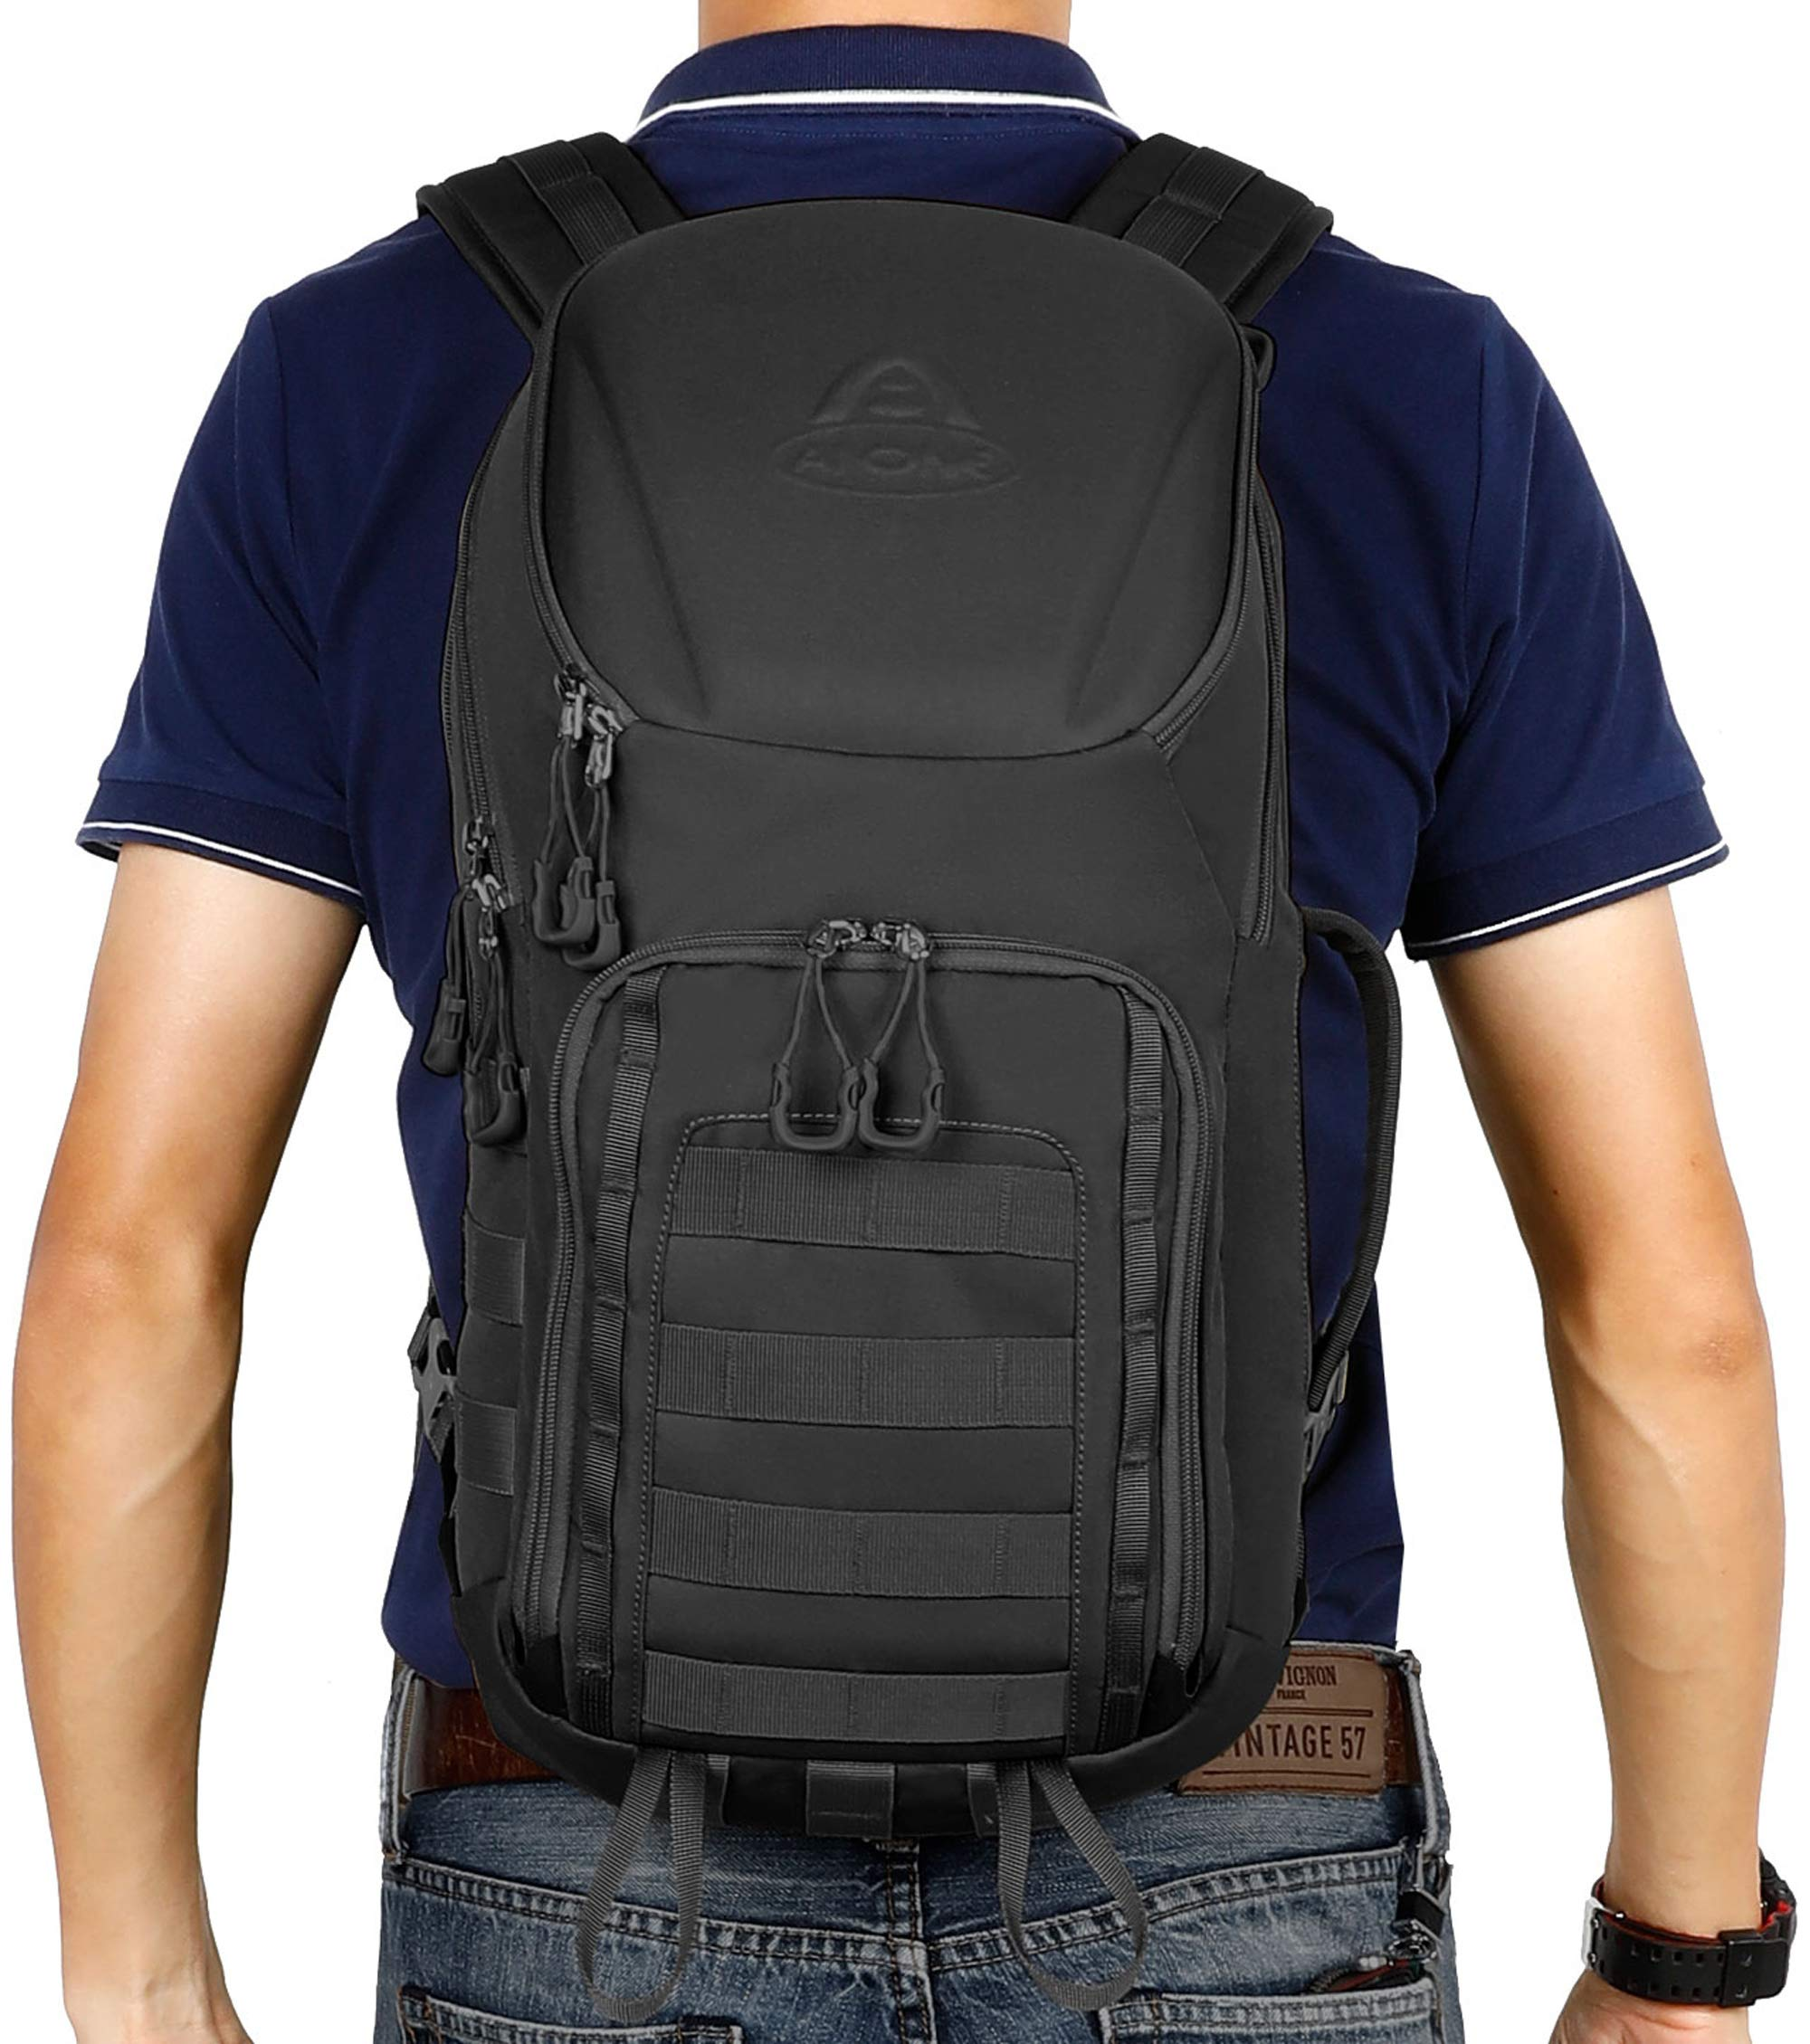 Aione Tactical Backpack Military Army Backpack Daypack 25L/30L/32L/54L Assault Pack Bug Out Bag with Hard Shell Top Pocket